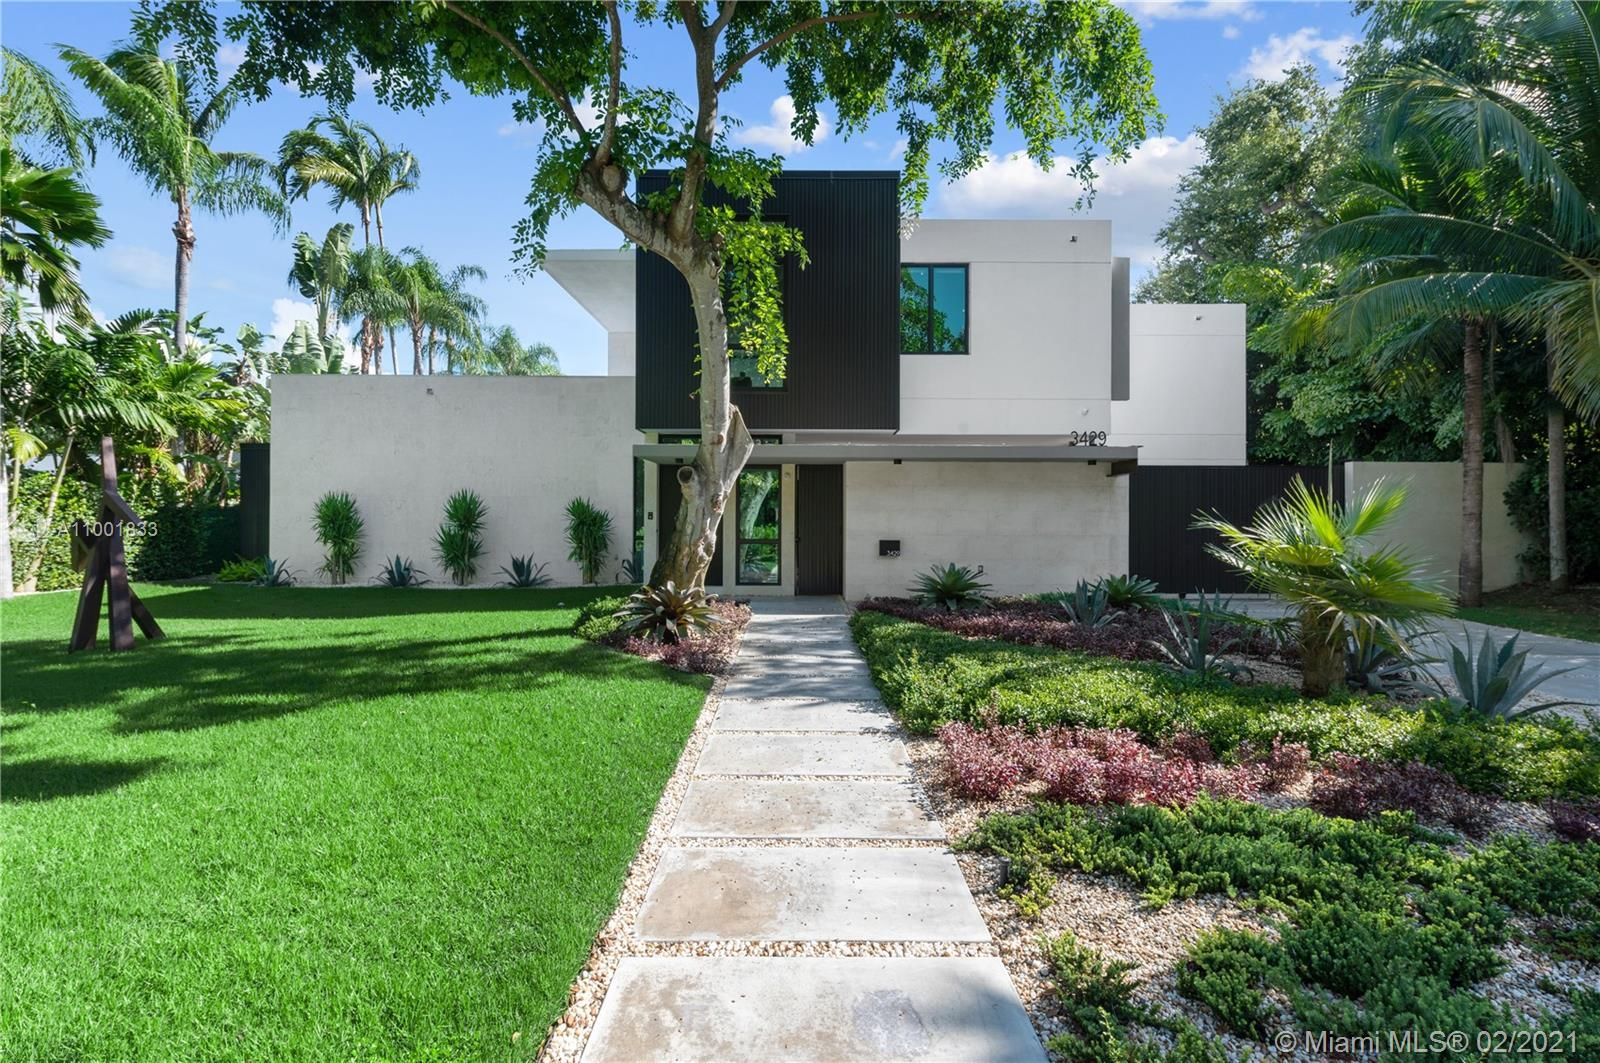 Welcome to the Moorings. This exquisite home was designed by Roney Mateu in a Modern Miami style. New 2019 construction offers effortless 21st-century luxury living & timeless sensibility. Every inch of its 5,936 SF is scaled to full advantage. Sky-high glass walls welcome natural light & frame the lush landscape & 63-ft pool w/waterfall. Marble and oak plank floors throughout. Ultimate Scavolini Italian kitchen w/Gaggenau appliances; sleek baths; full gym; staff suite. The private, gated Moorings enclave boasts 24-hr security & 3 parks within its intimate bayfront confines; from its coveted Main Hwy address walk or bike to top-tier schools, downtown Grove restaurants & shops.